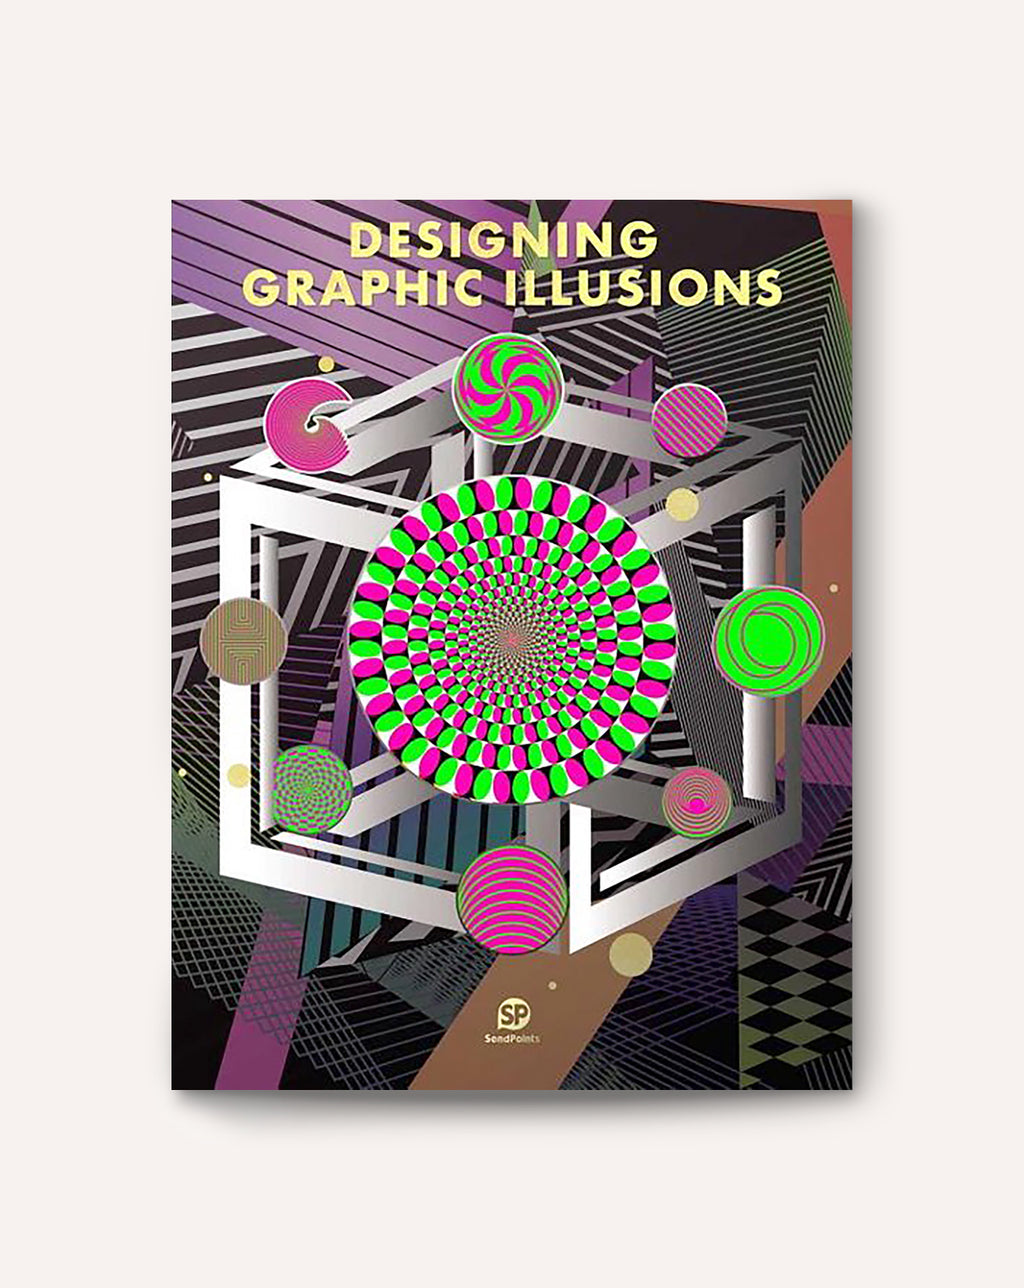 Designing Graphic Illusions